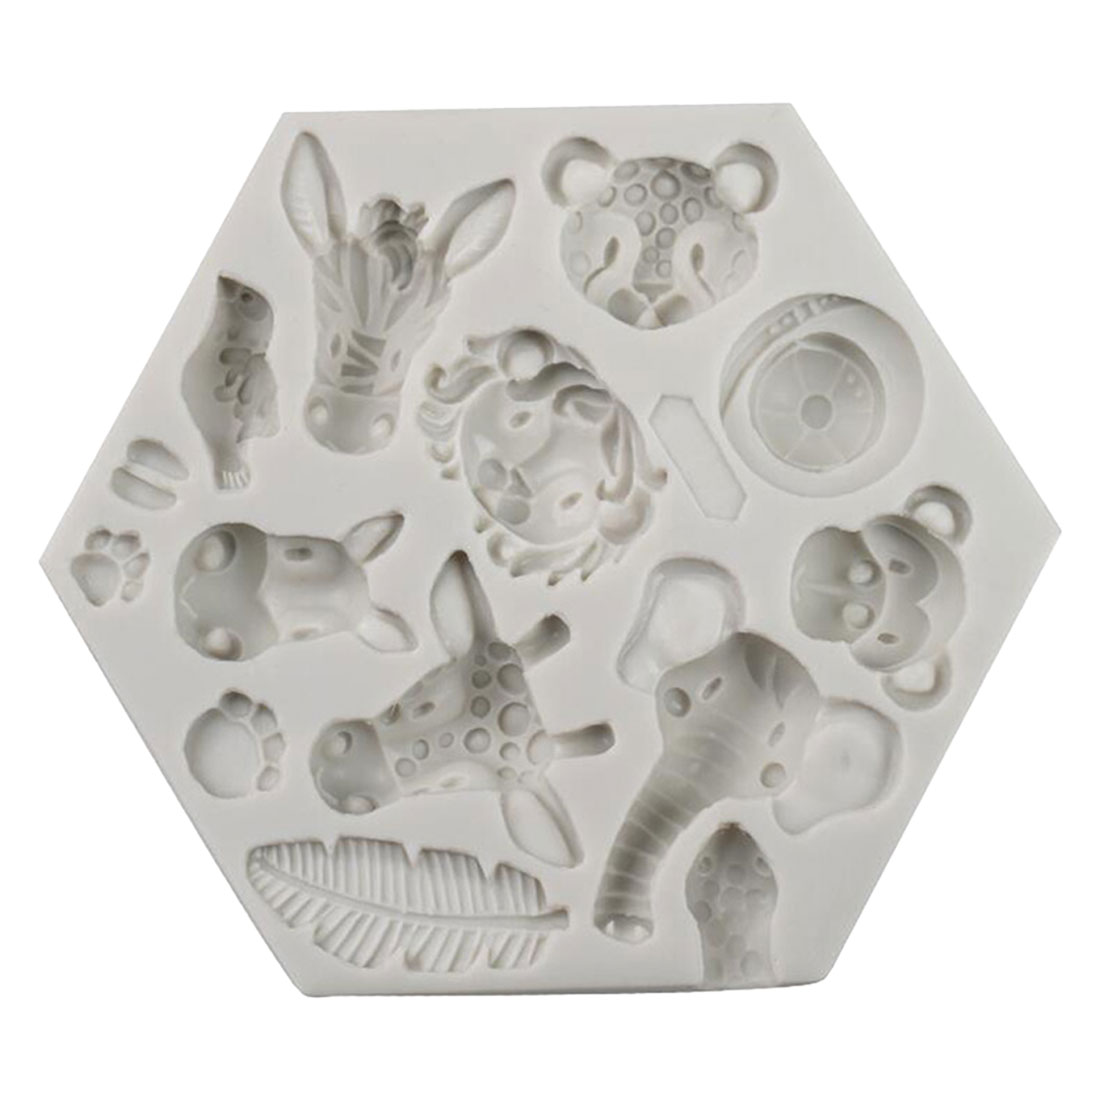 Top Sale Forest Animal Mould Silicone Molds Woodland Cake Decorative Mold ToolsCake Decorating Fondant Mold